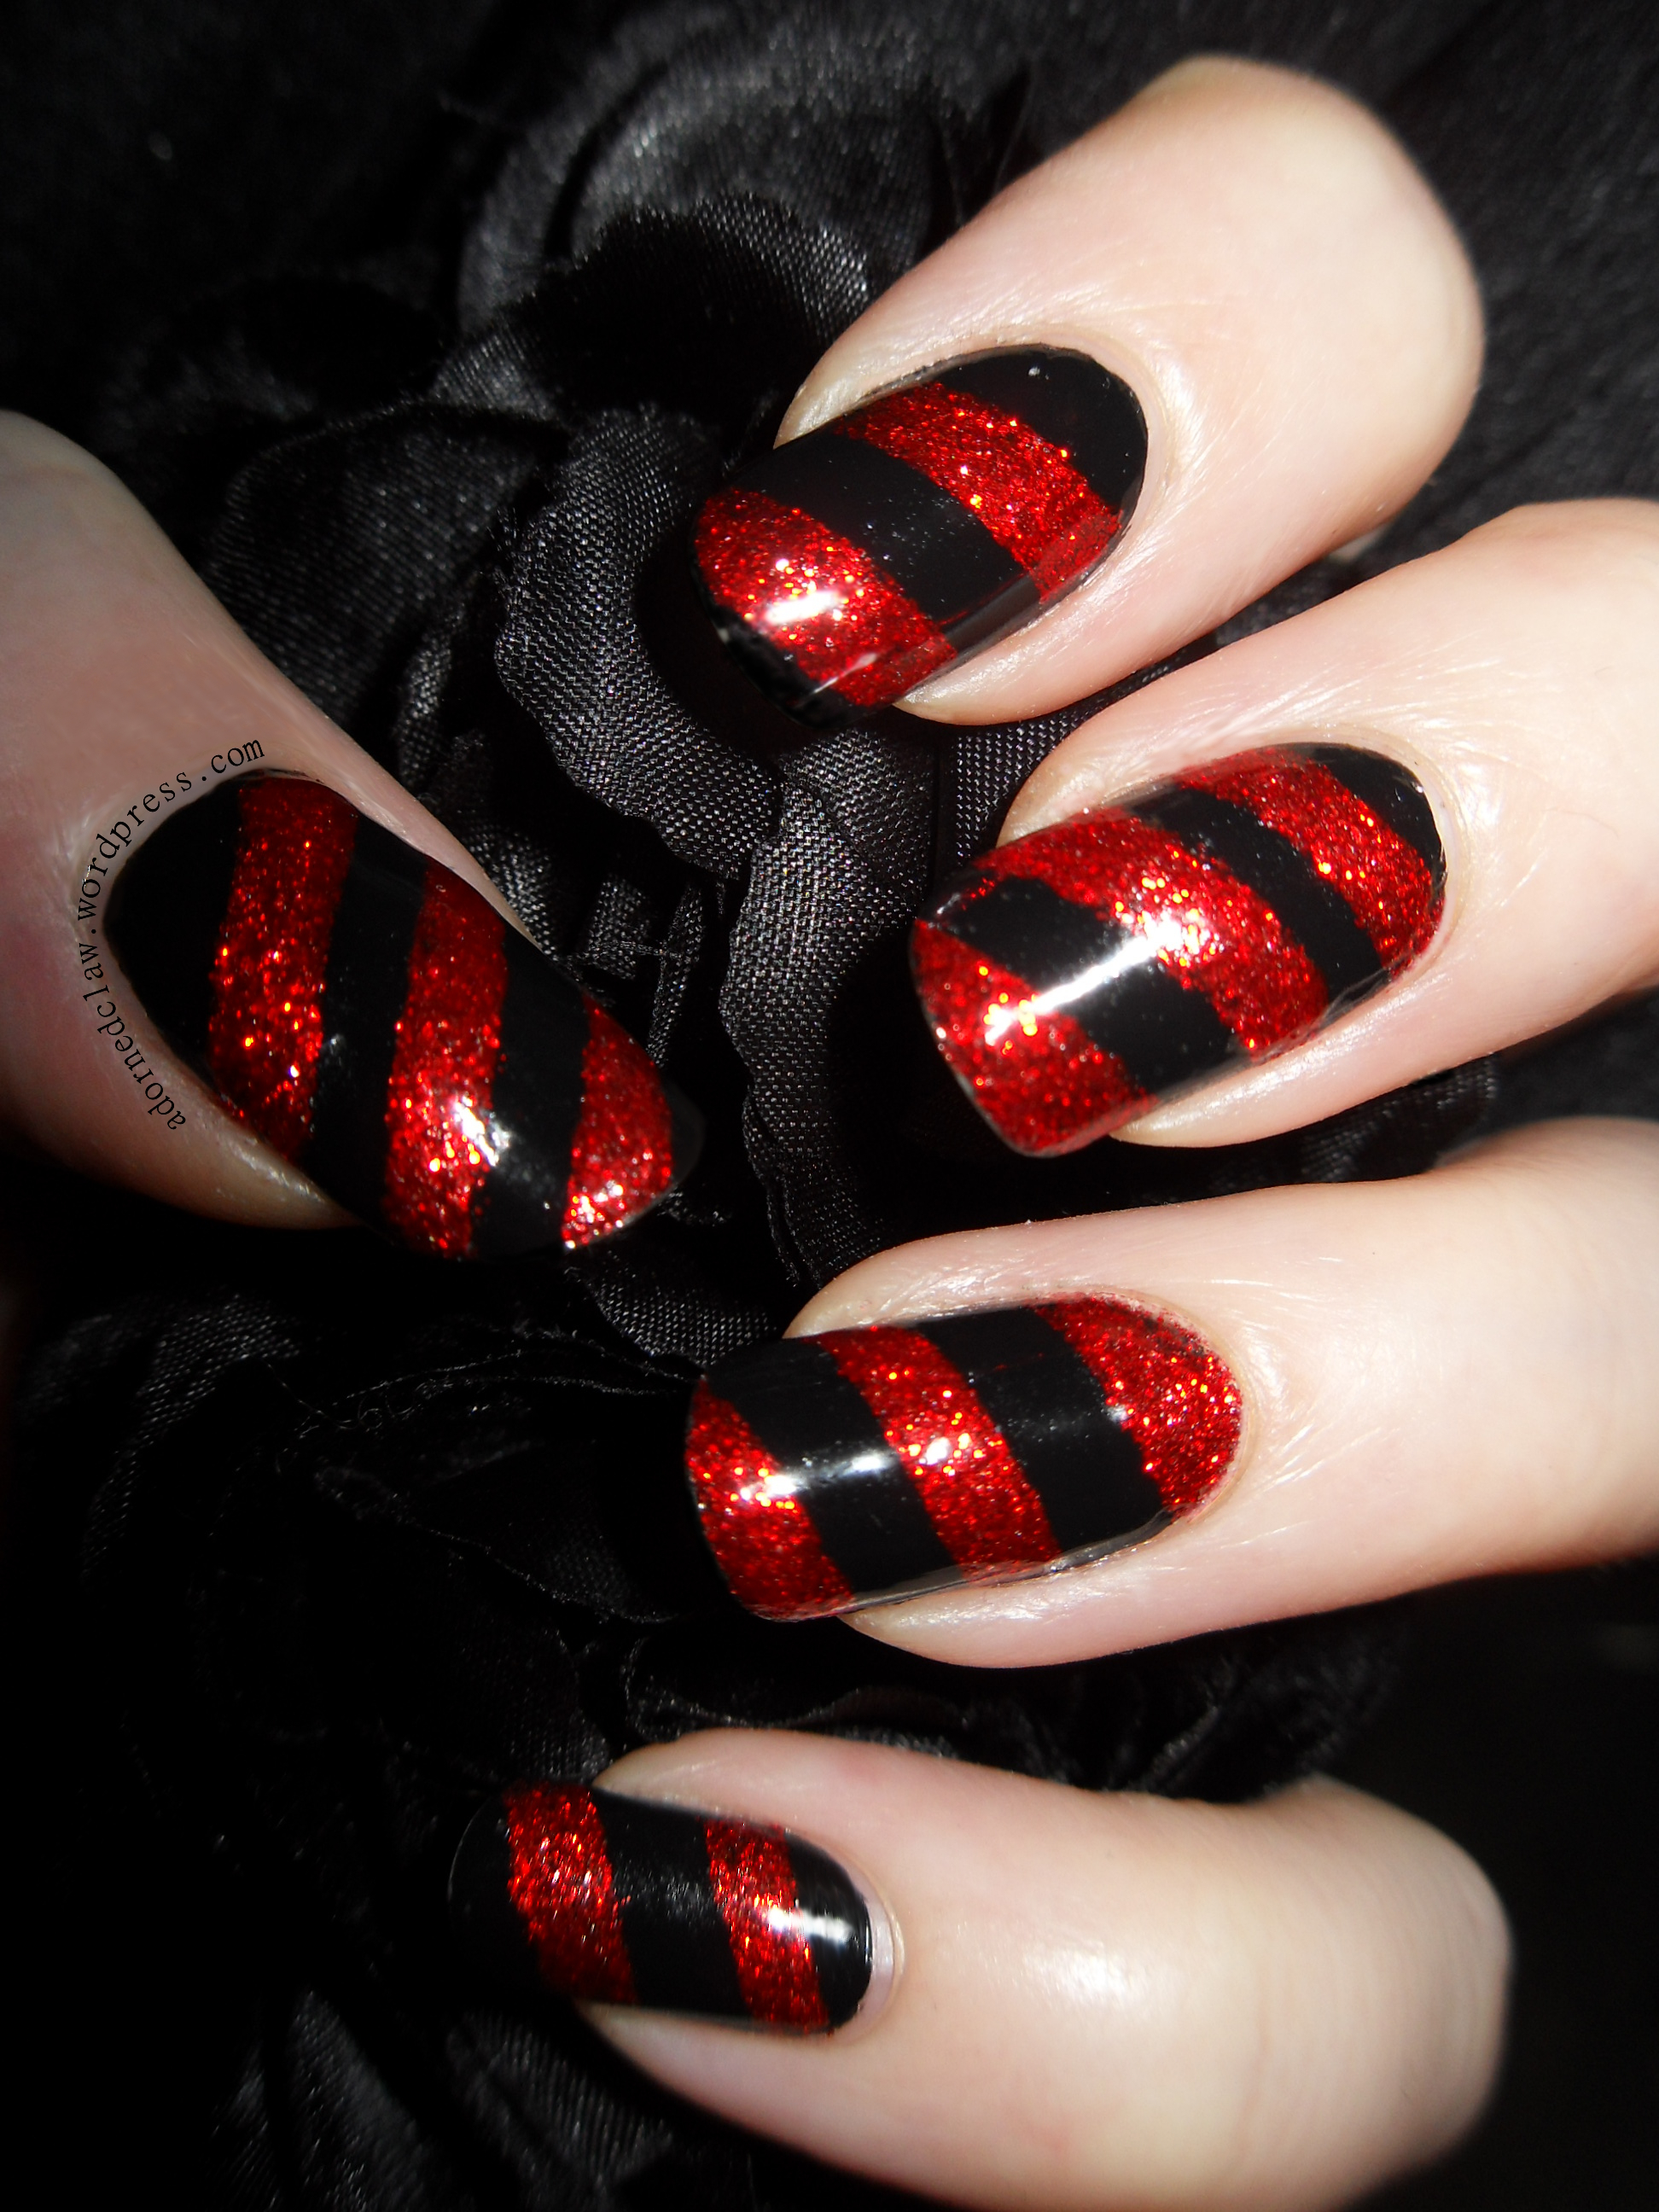 Candy Candy Cane Nail Art Nails Red  Apps Directories